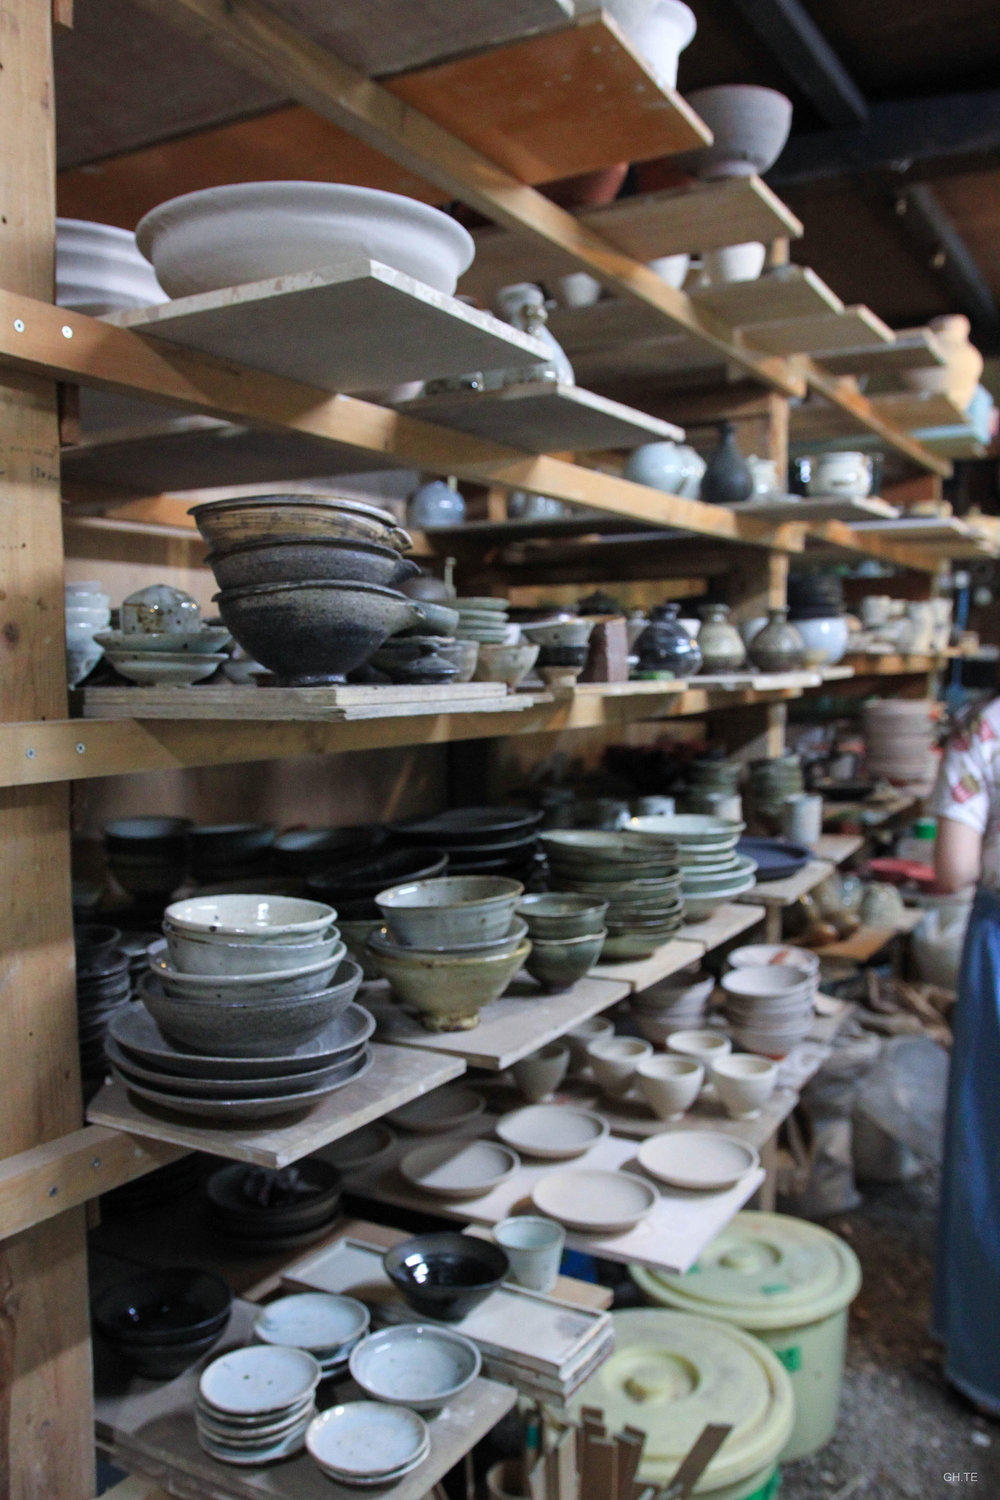 Shopping artisnal ceramics in Fujino, Japan.   Photo by Grace Hsieh